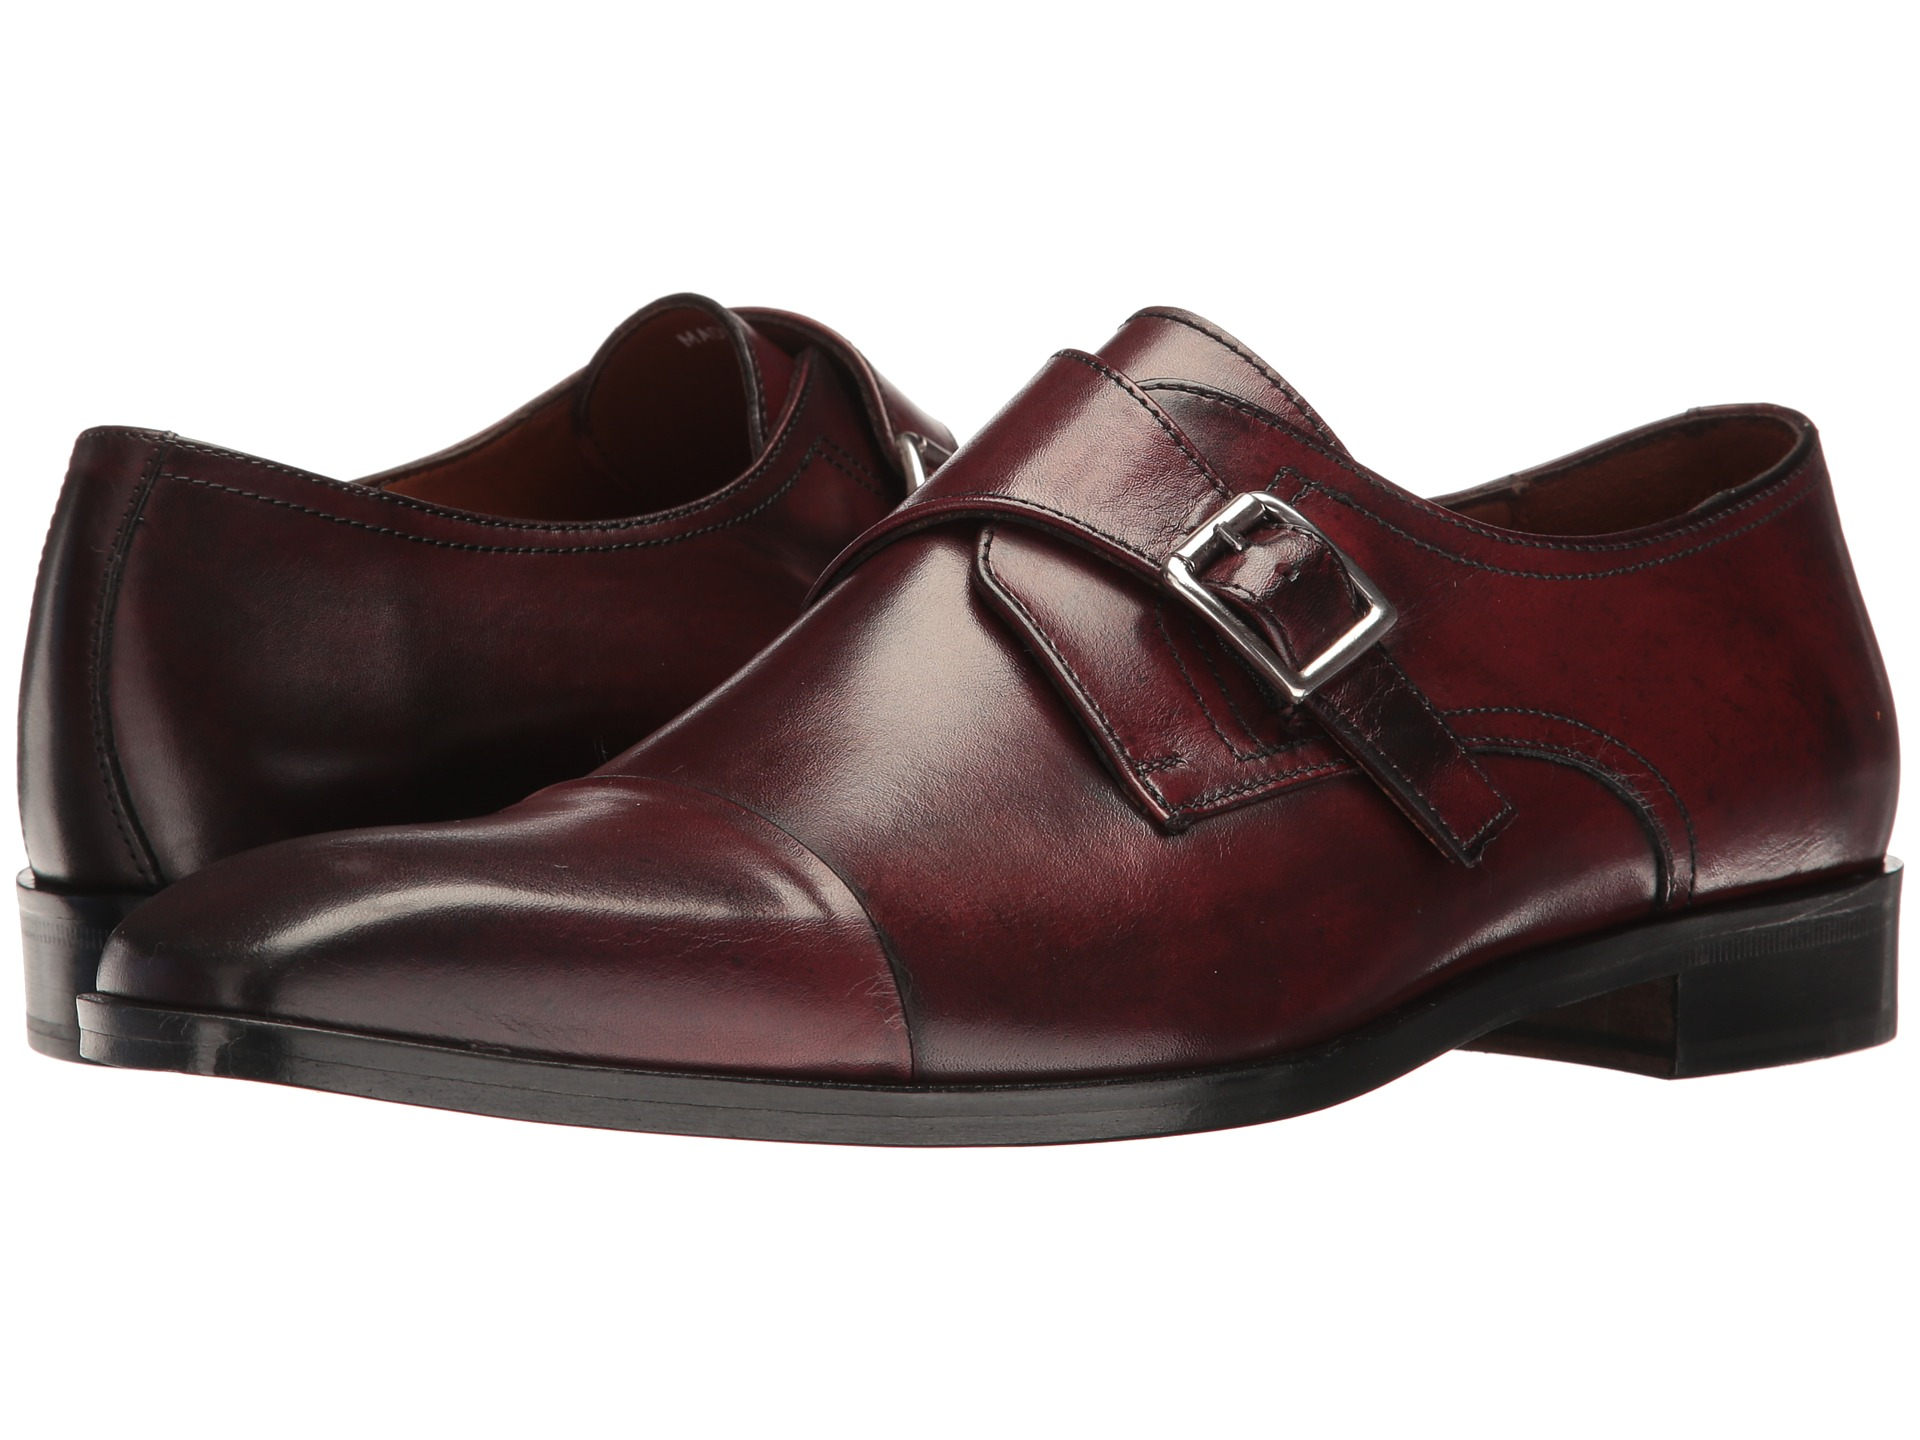 Monk Shoe With Platform Sole For Girls